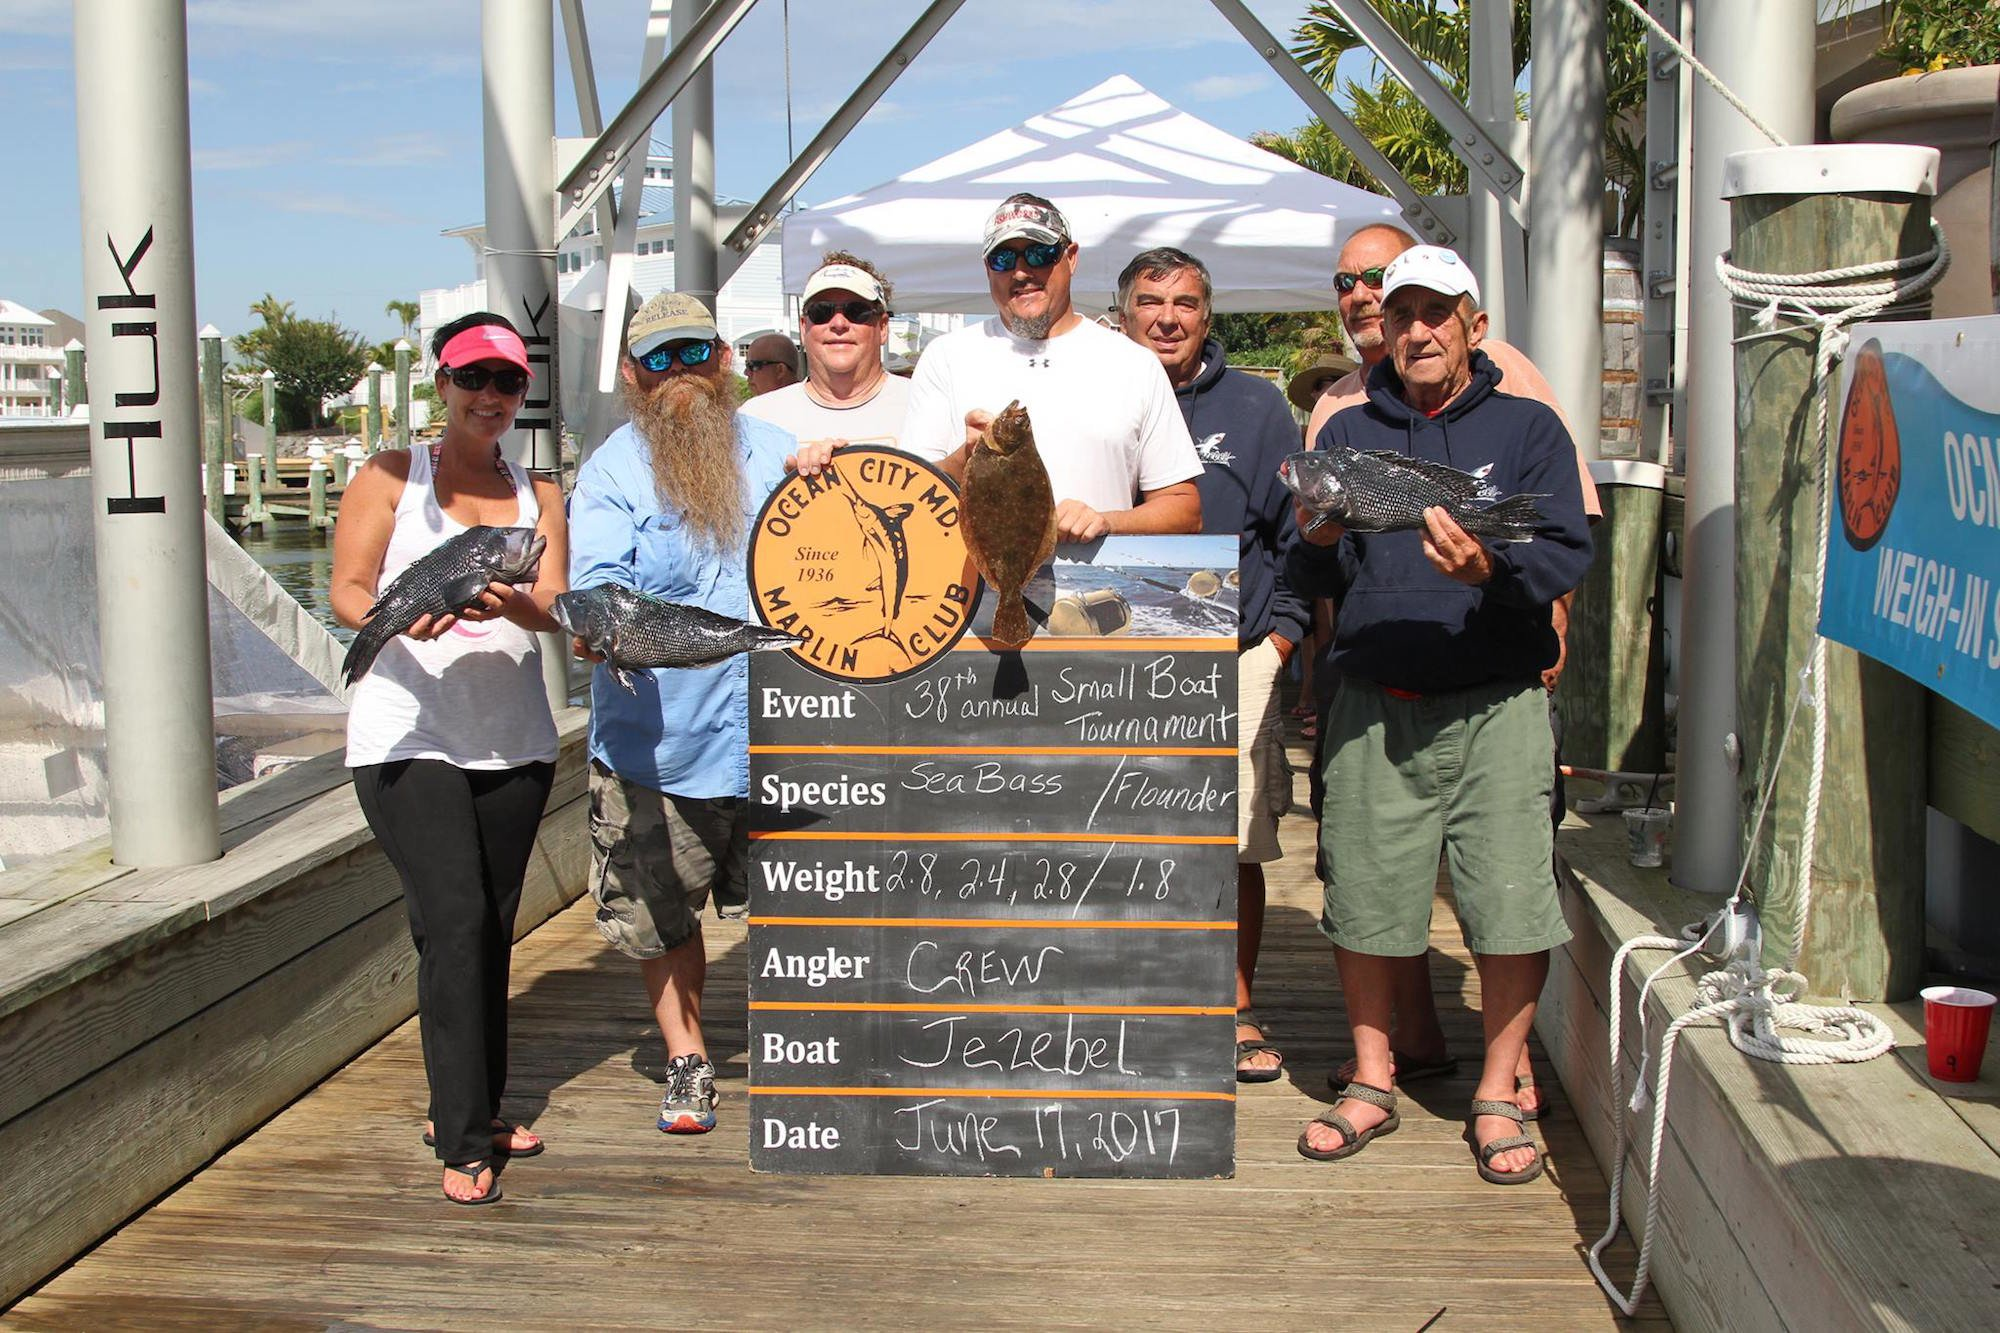 OCMC Small Boat Tournament Results